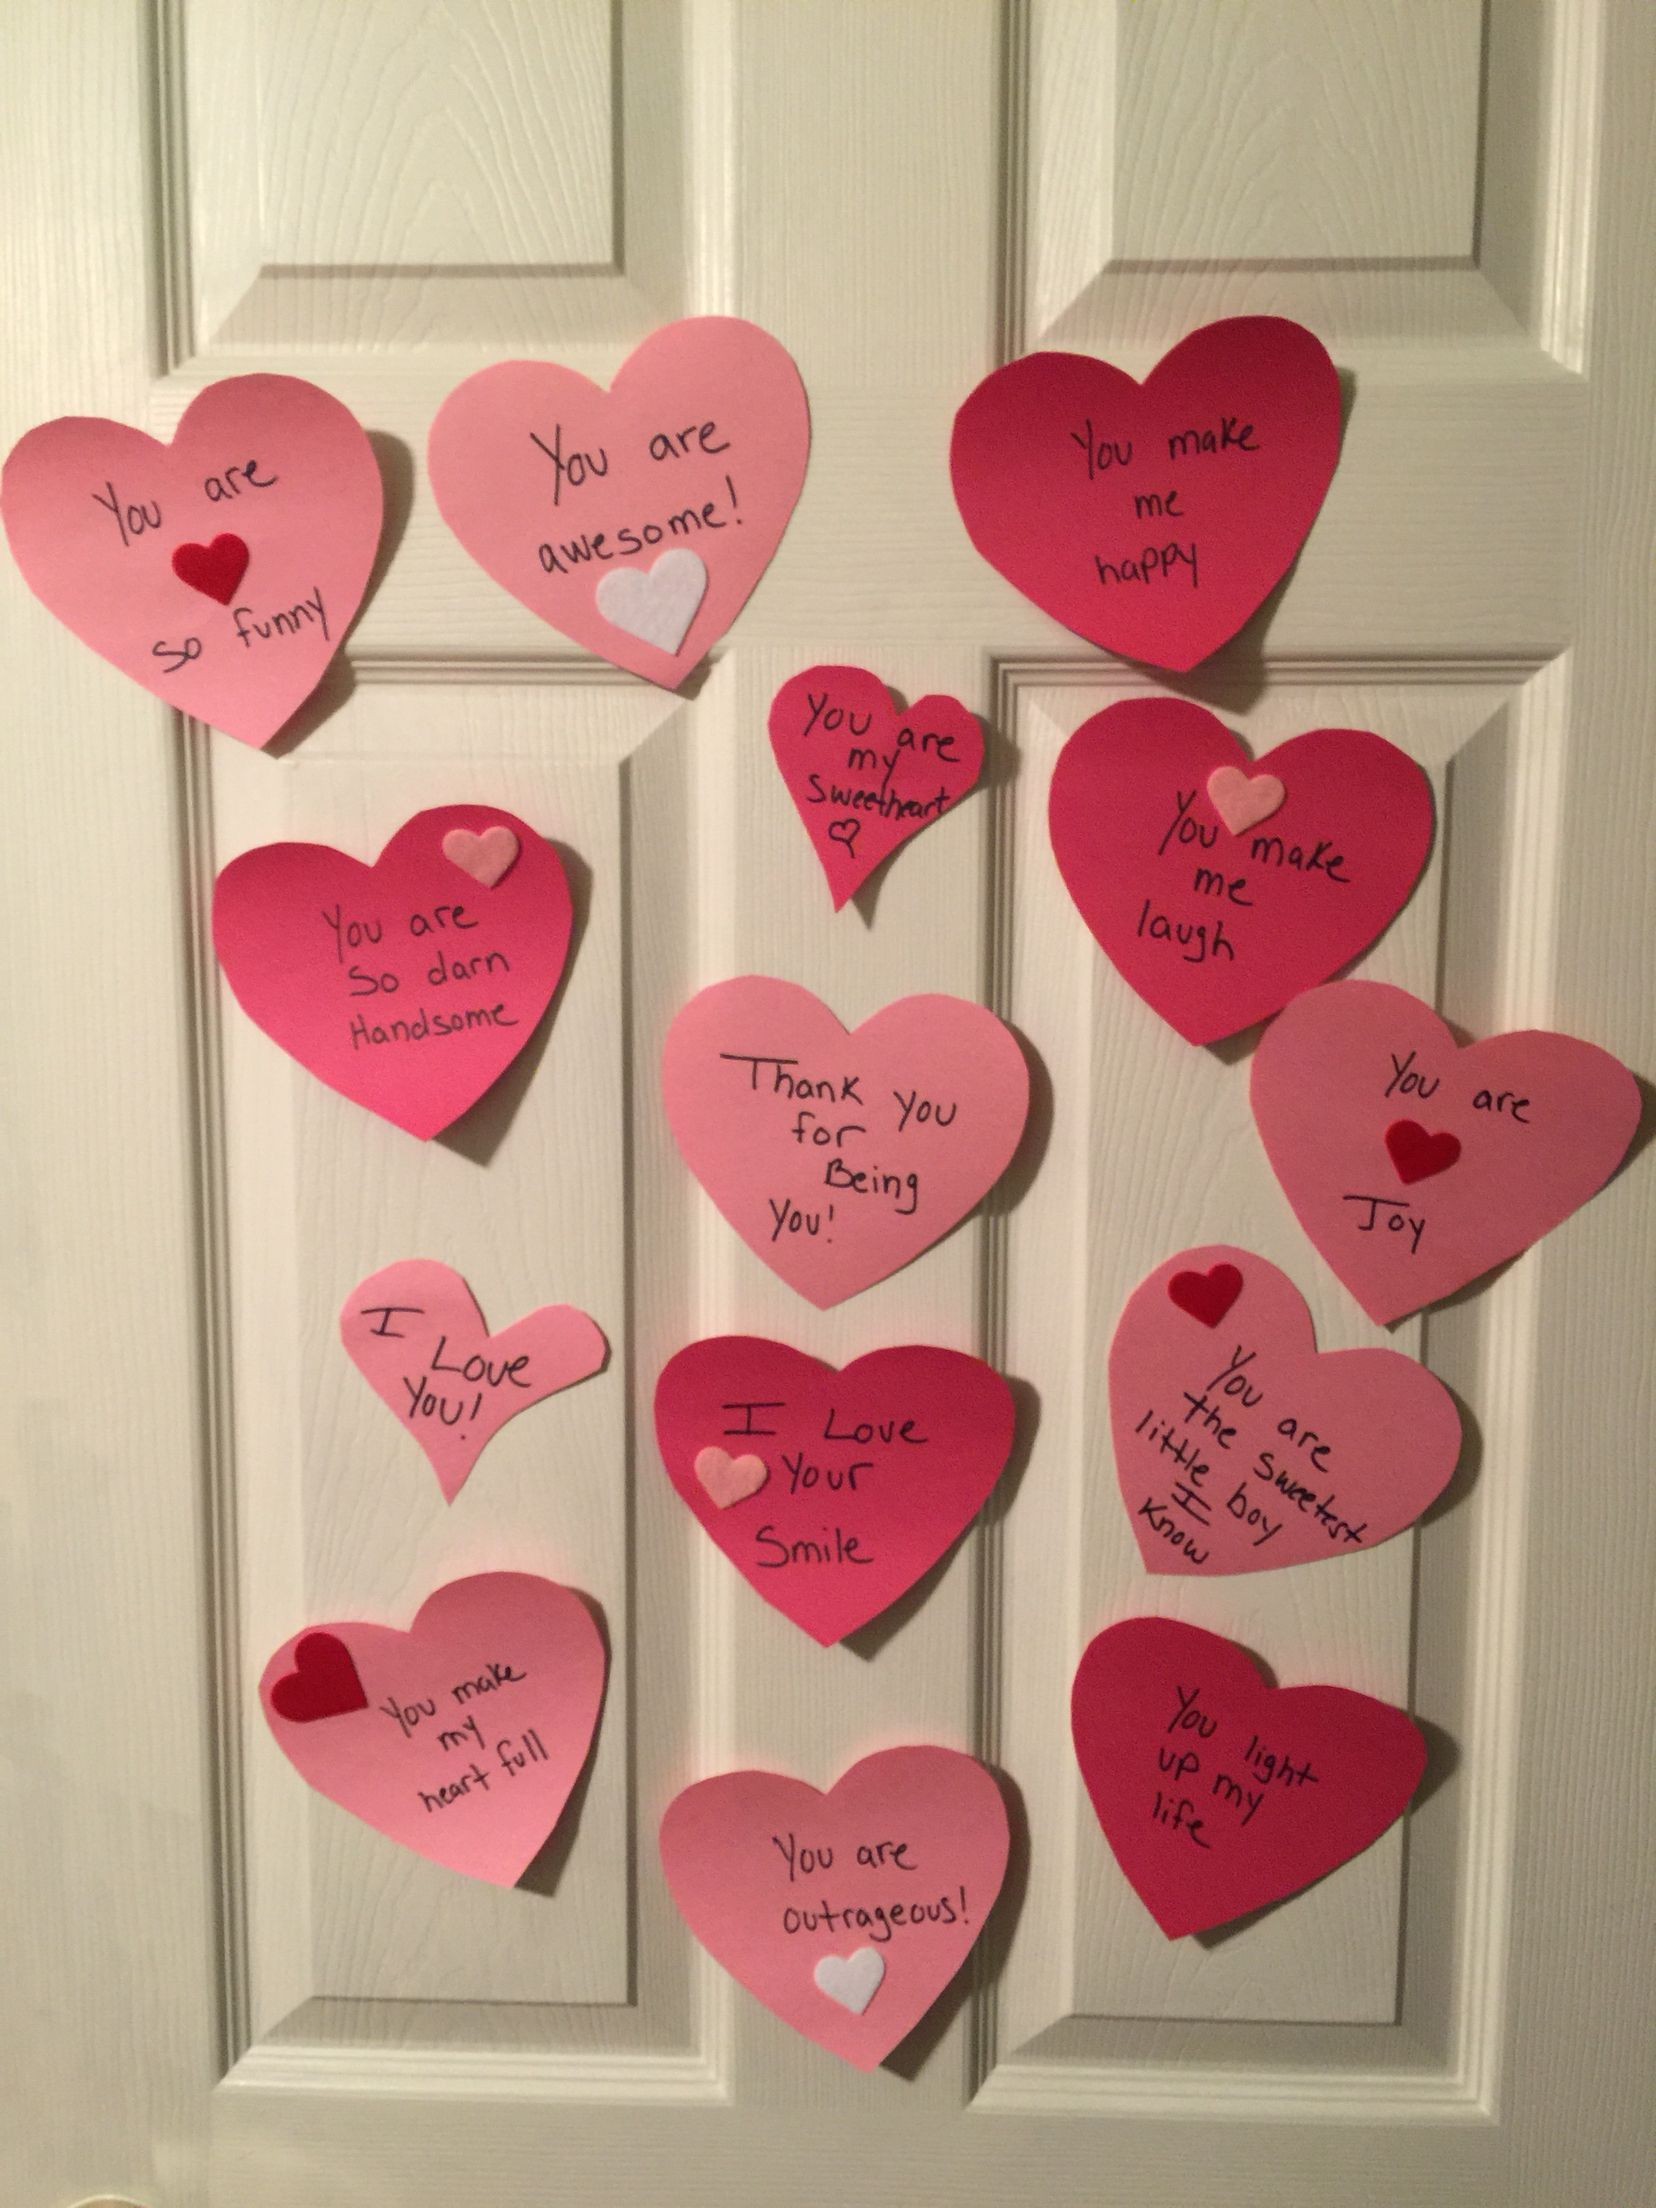 Pin by Kaia Killian on Diy valentines cards in 2020 Diy